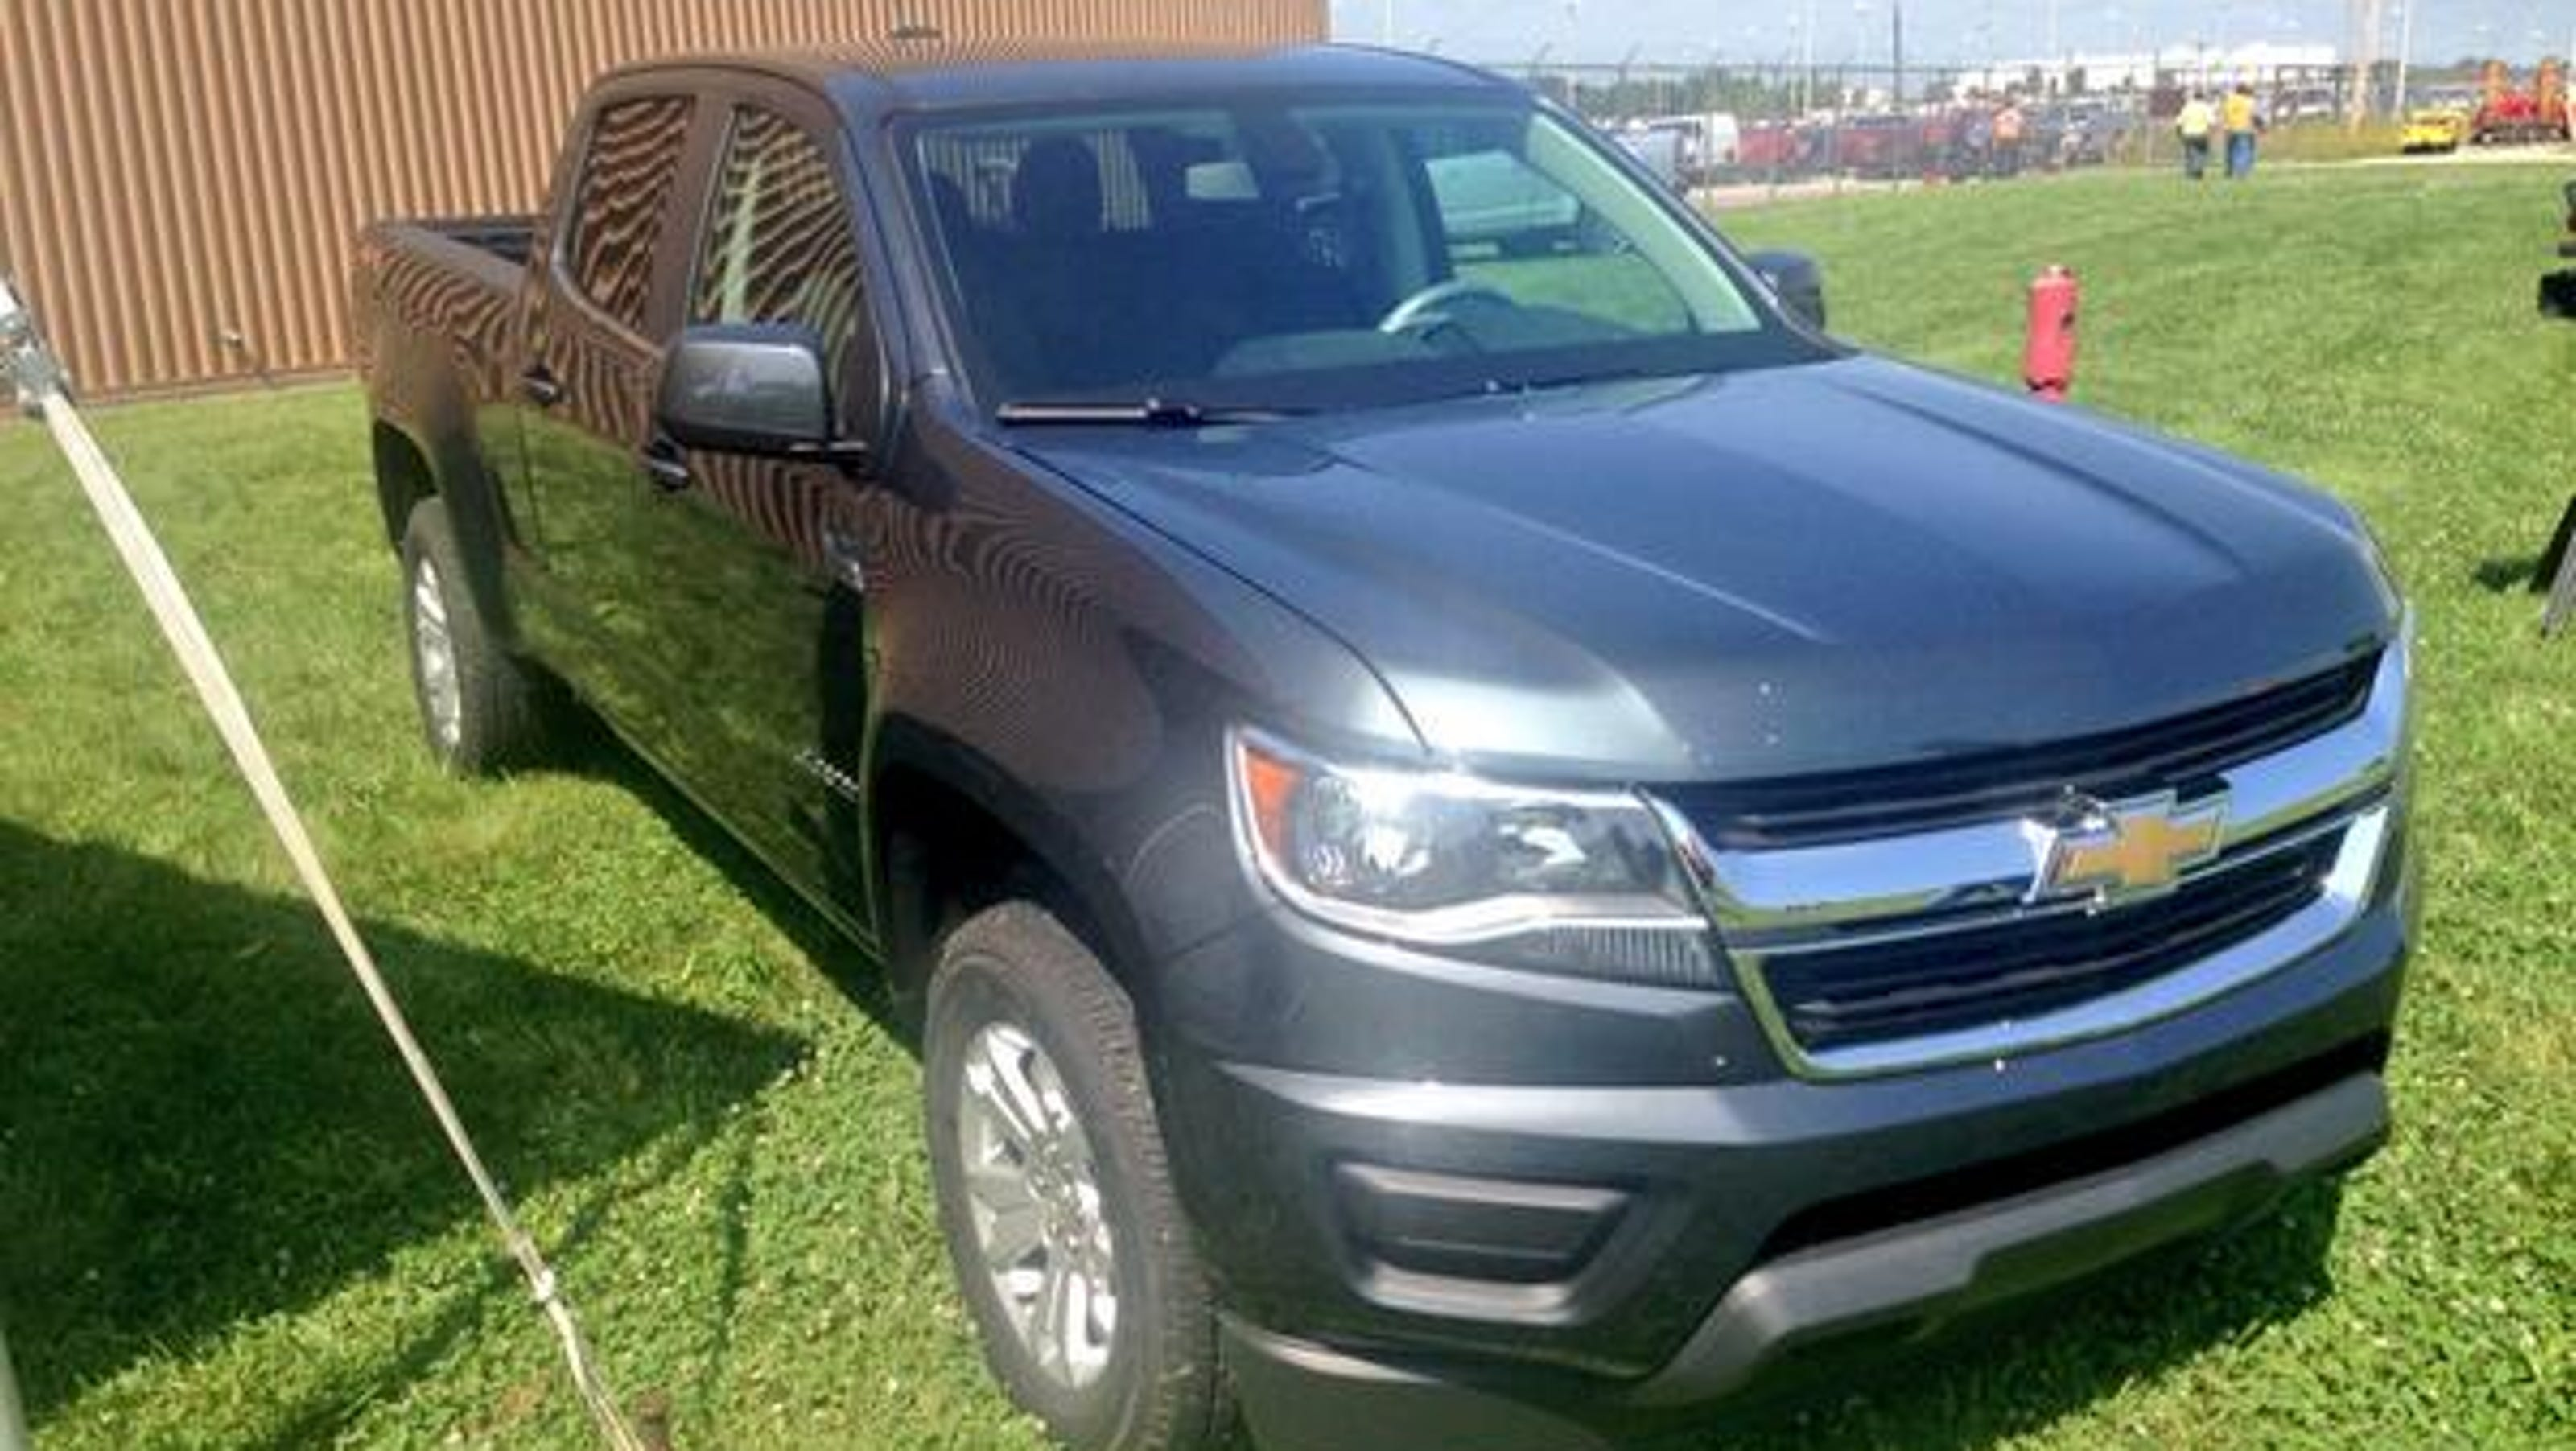 wentzville gm to produce 2 new trucks. Cars Review. Best American Auto & Cars Review